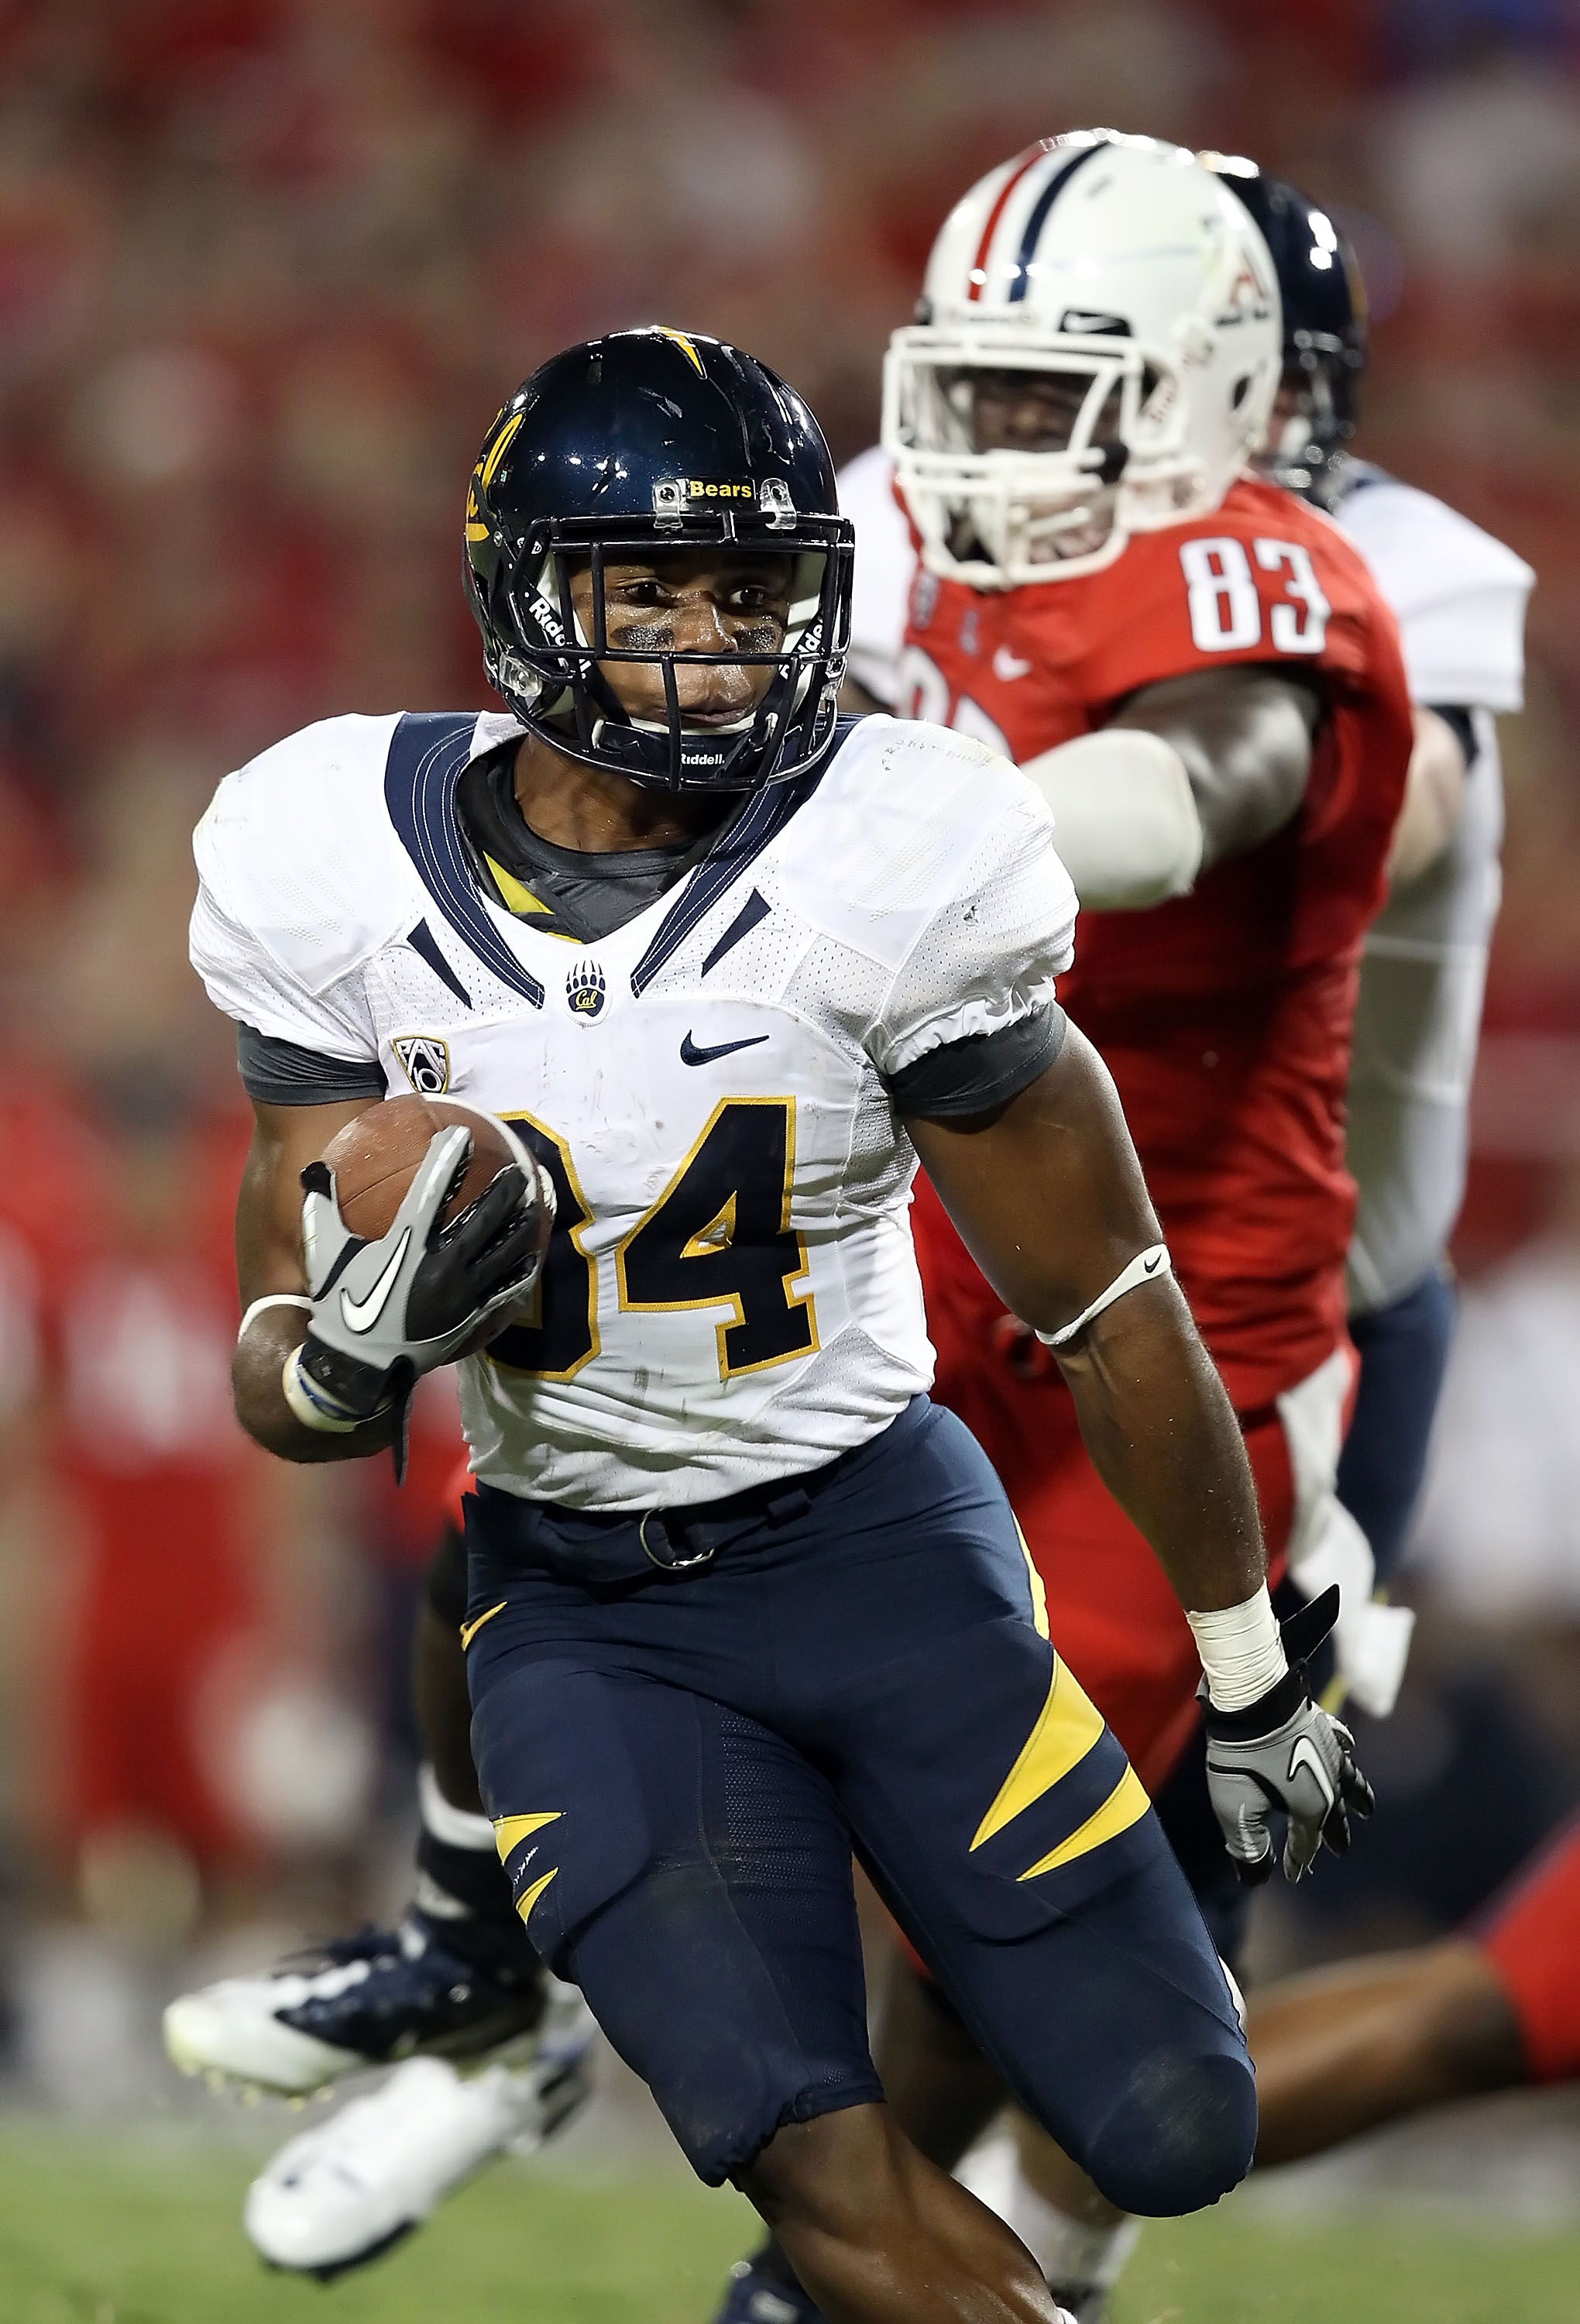 TUCSON, AZ - SEPTEMBER 25:  Runningback Shane Vereen #34 of the California Golden Bears rushes the football against the Arizona Wildcats during the college football game at Arizona Stadium on September 25, 2010 in Tucson, Arizona. The Wildcats defeated th